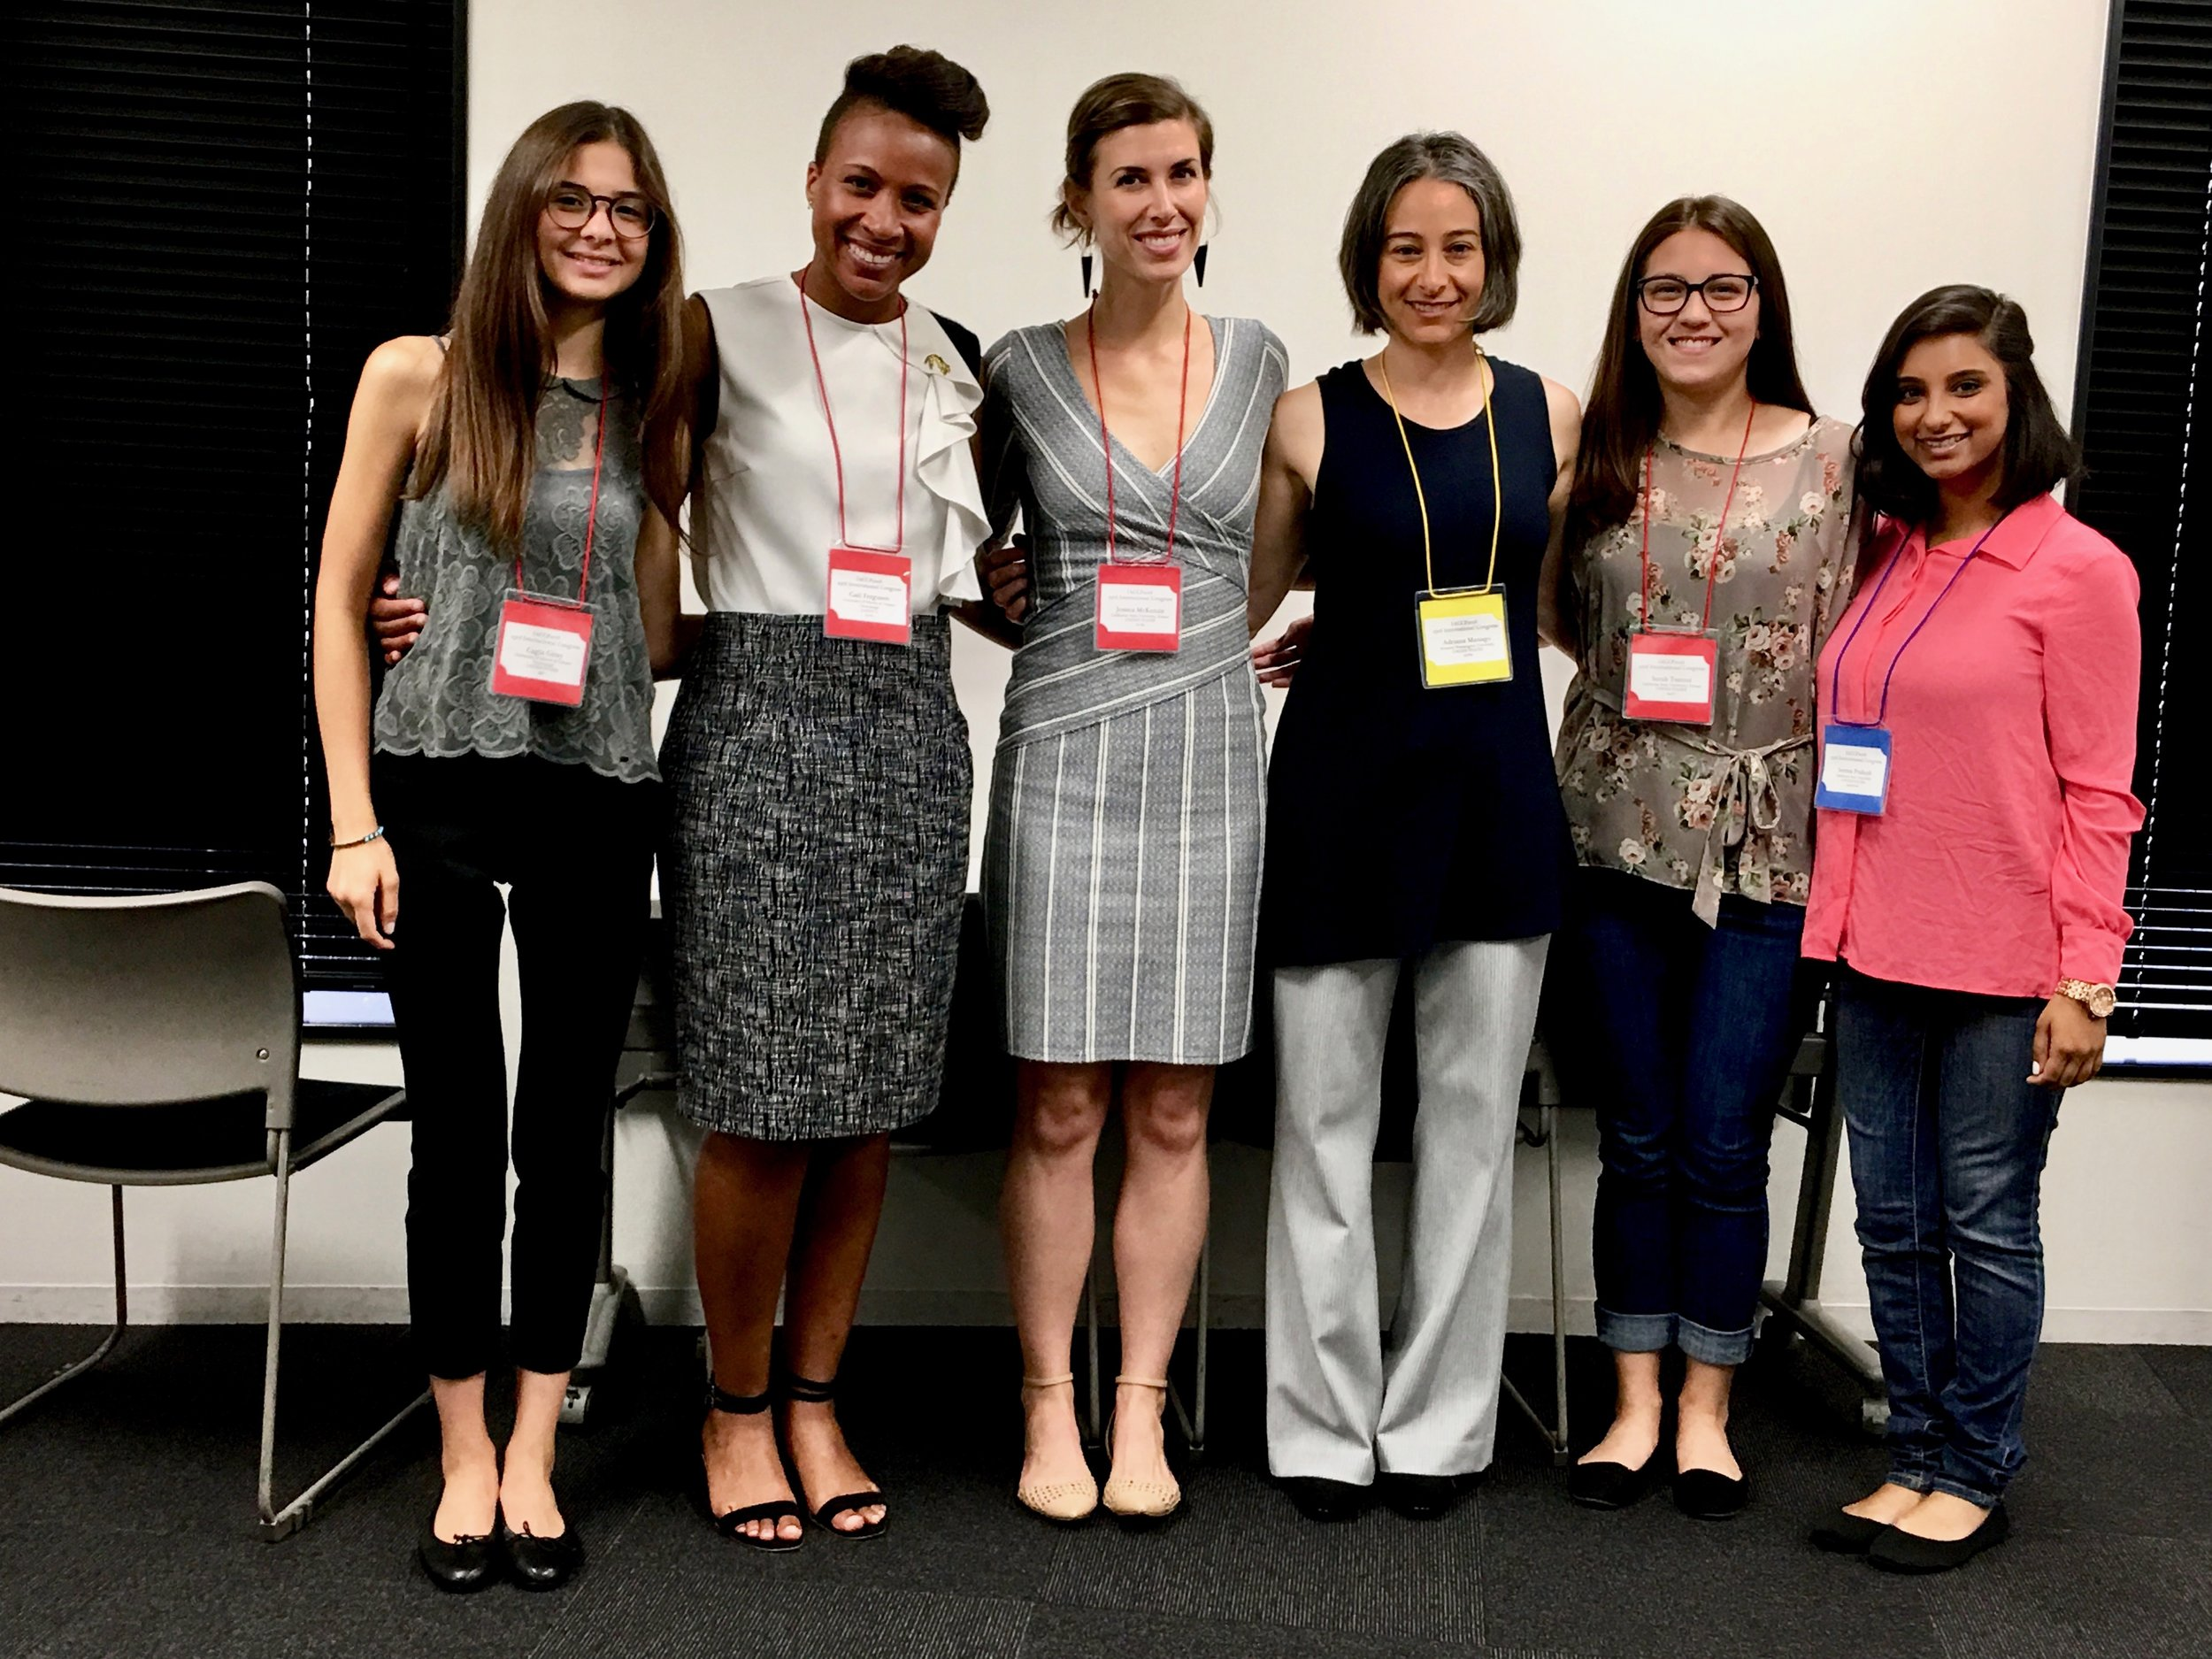 After Youth Development in Contexts of Globalization and Sociocultural Change symposium (with presentations from Drs. Ferguson, Manago, & McKenzie)  L-R: Cagla Giray (UIUC), Dr. Gail Ferguson (UIUC), Dr. Jessica McKenzie, Dr. Adriana Manago (UCSC), Sarah Tsutsui, & Seema Prakash